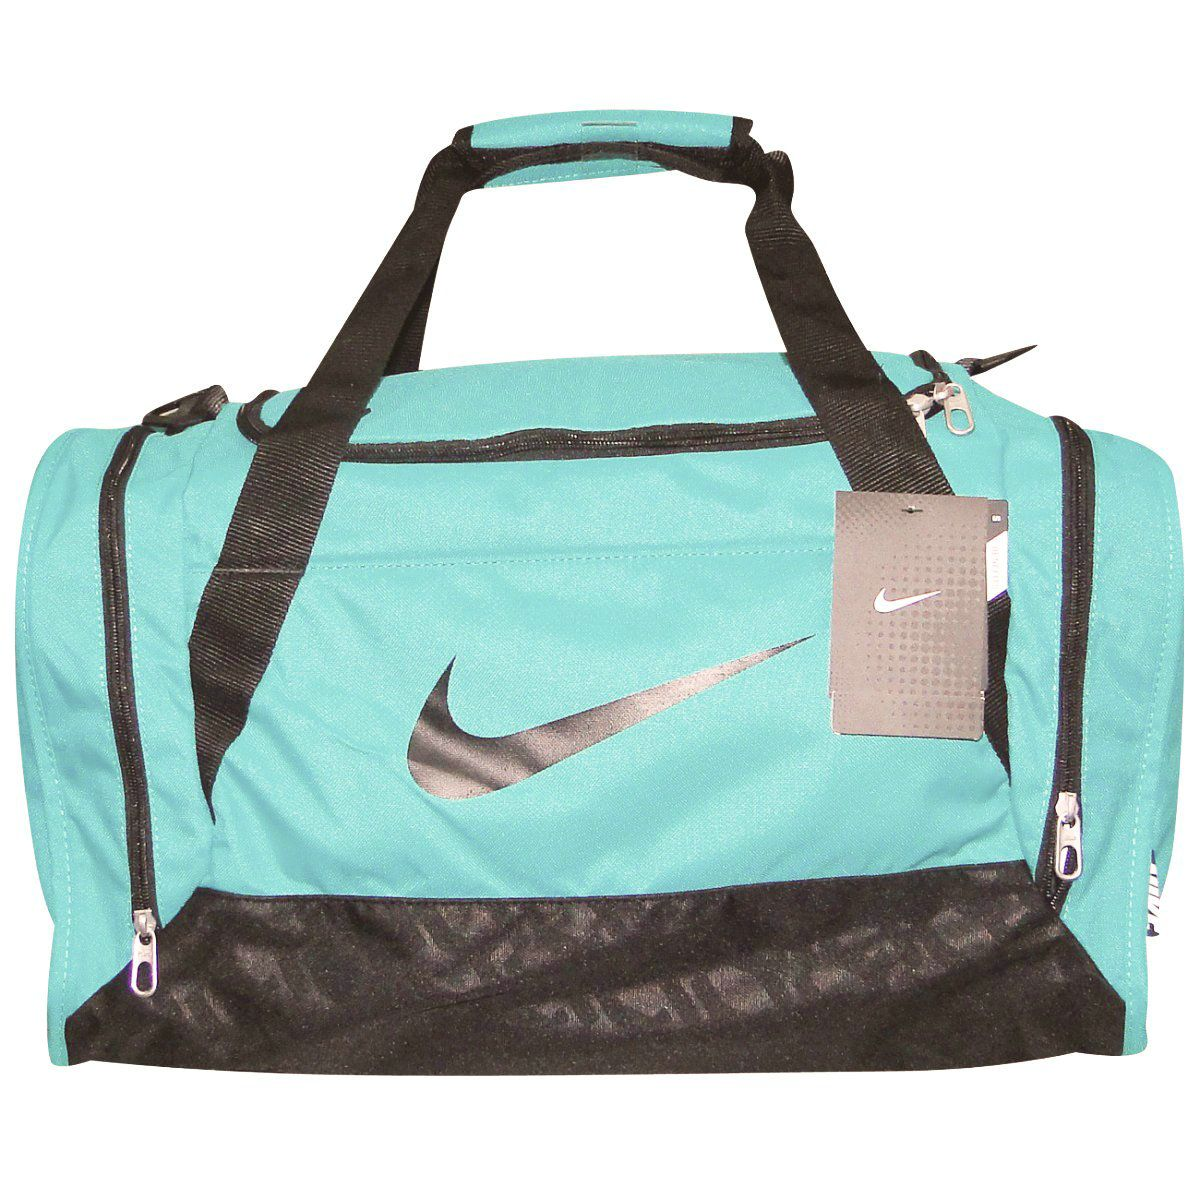 4af7a066c763 nike bags online discount cheap   OFF58% The Largest Catalog Discounts